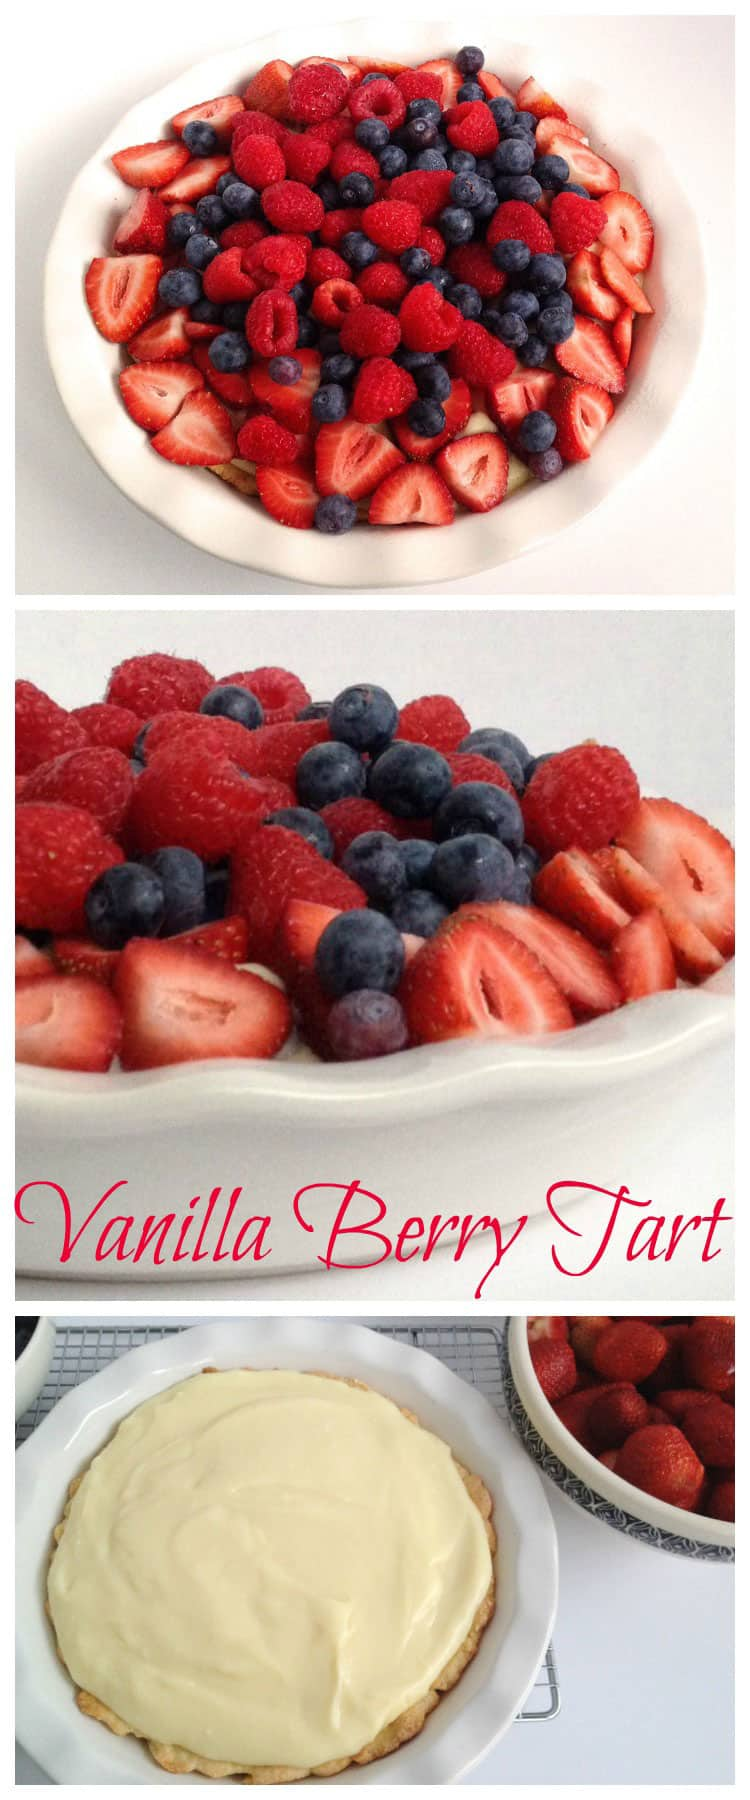 This amazing Vanilla Berry Tart is so easy to make, and looks so gorgeous, you will be asked to make it again and again. It's so delicious! Vanilla cream, delicious fresh berries on a sugar cookie crust!